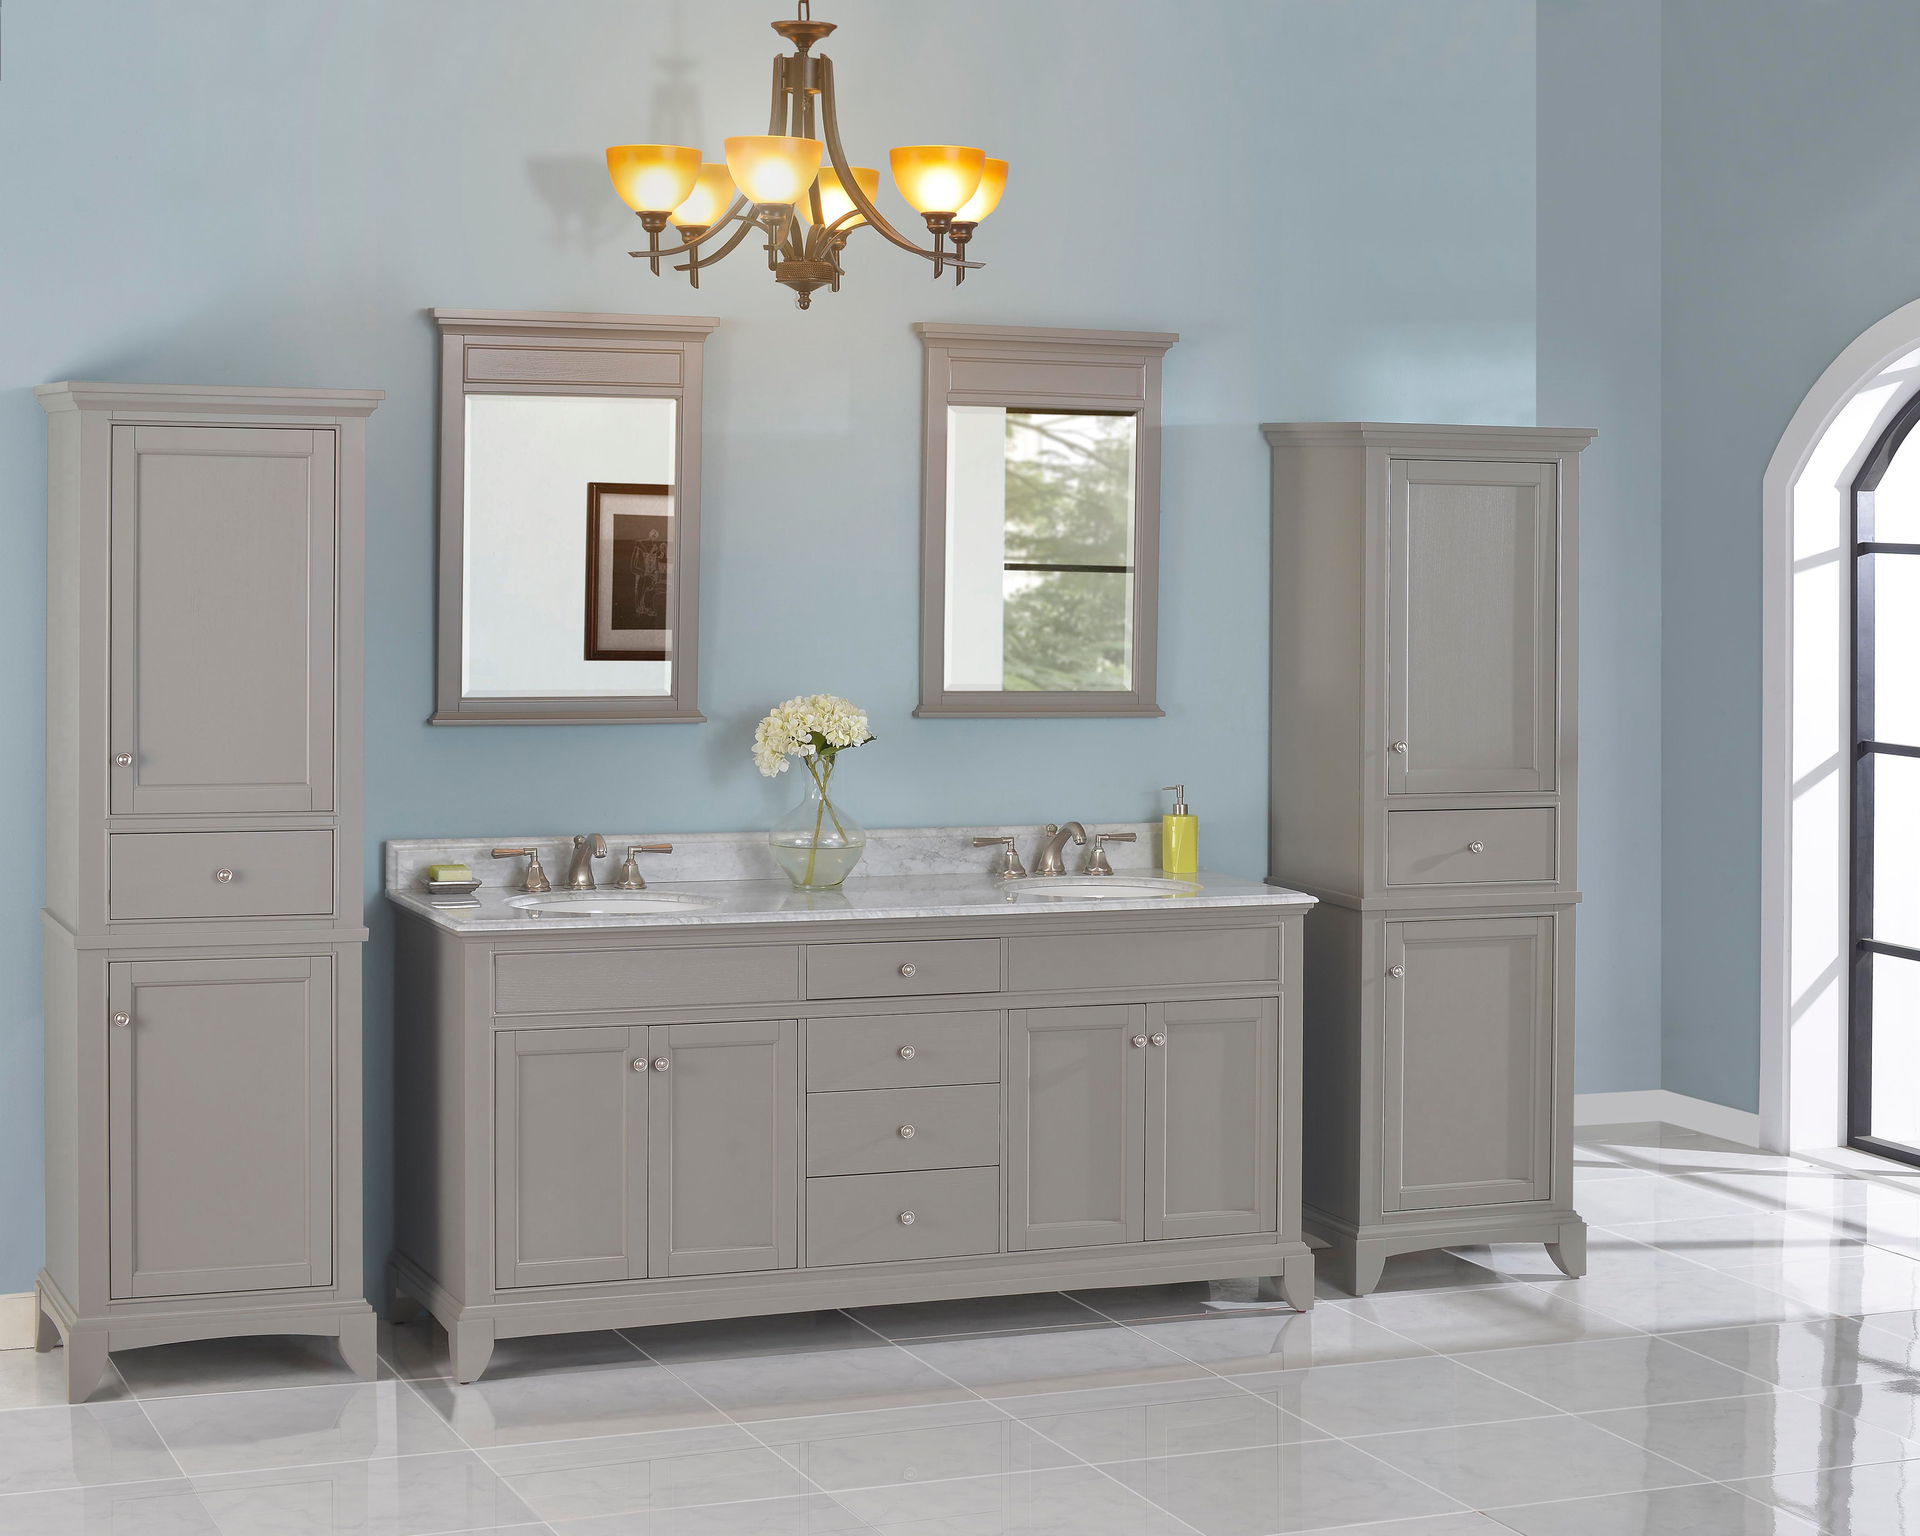 Fairmont bathroom vanities